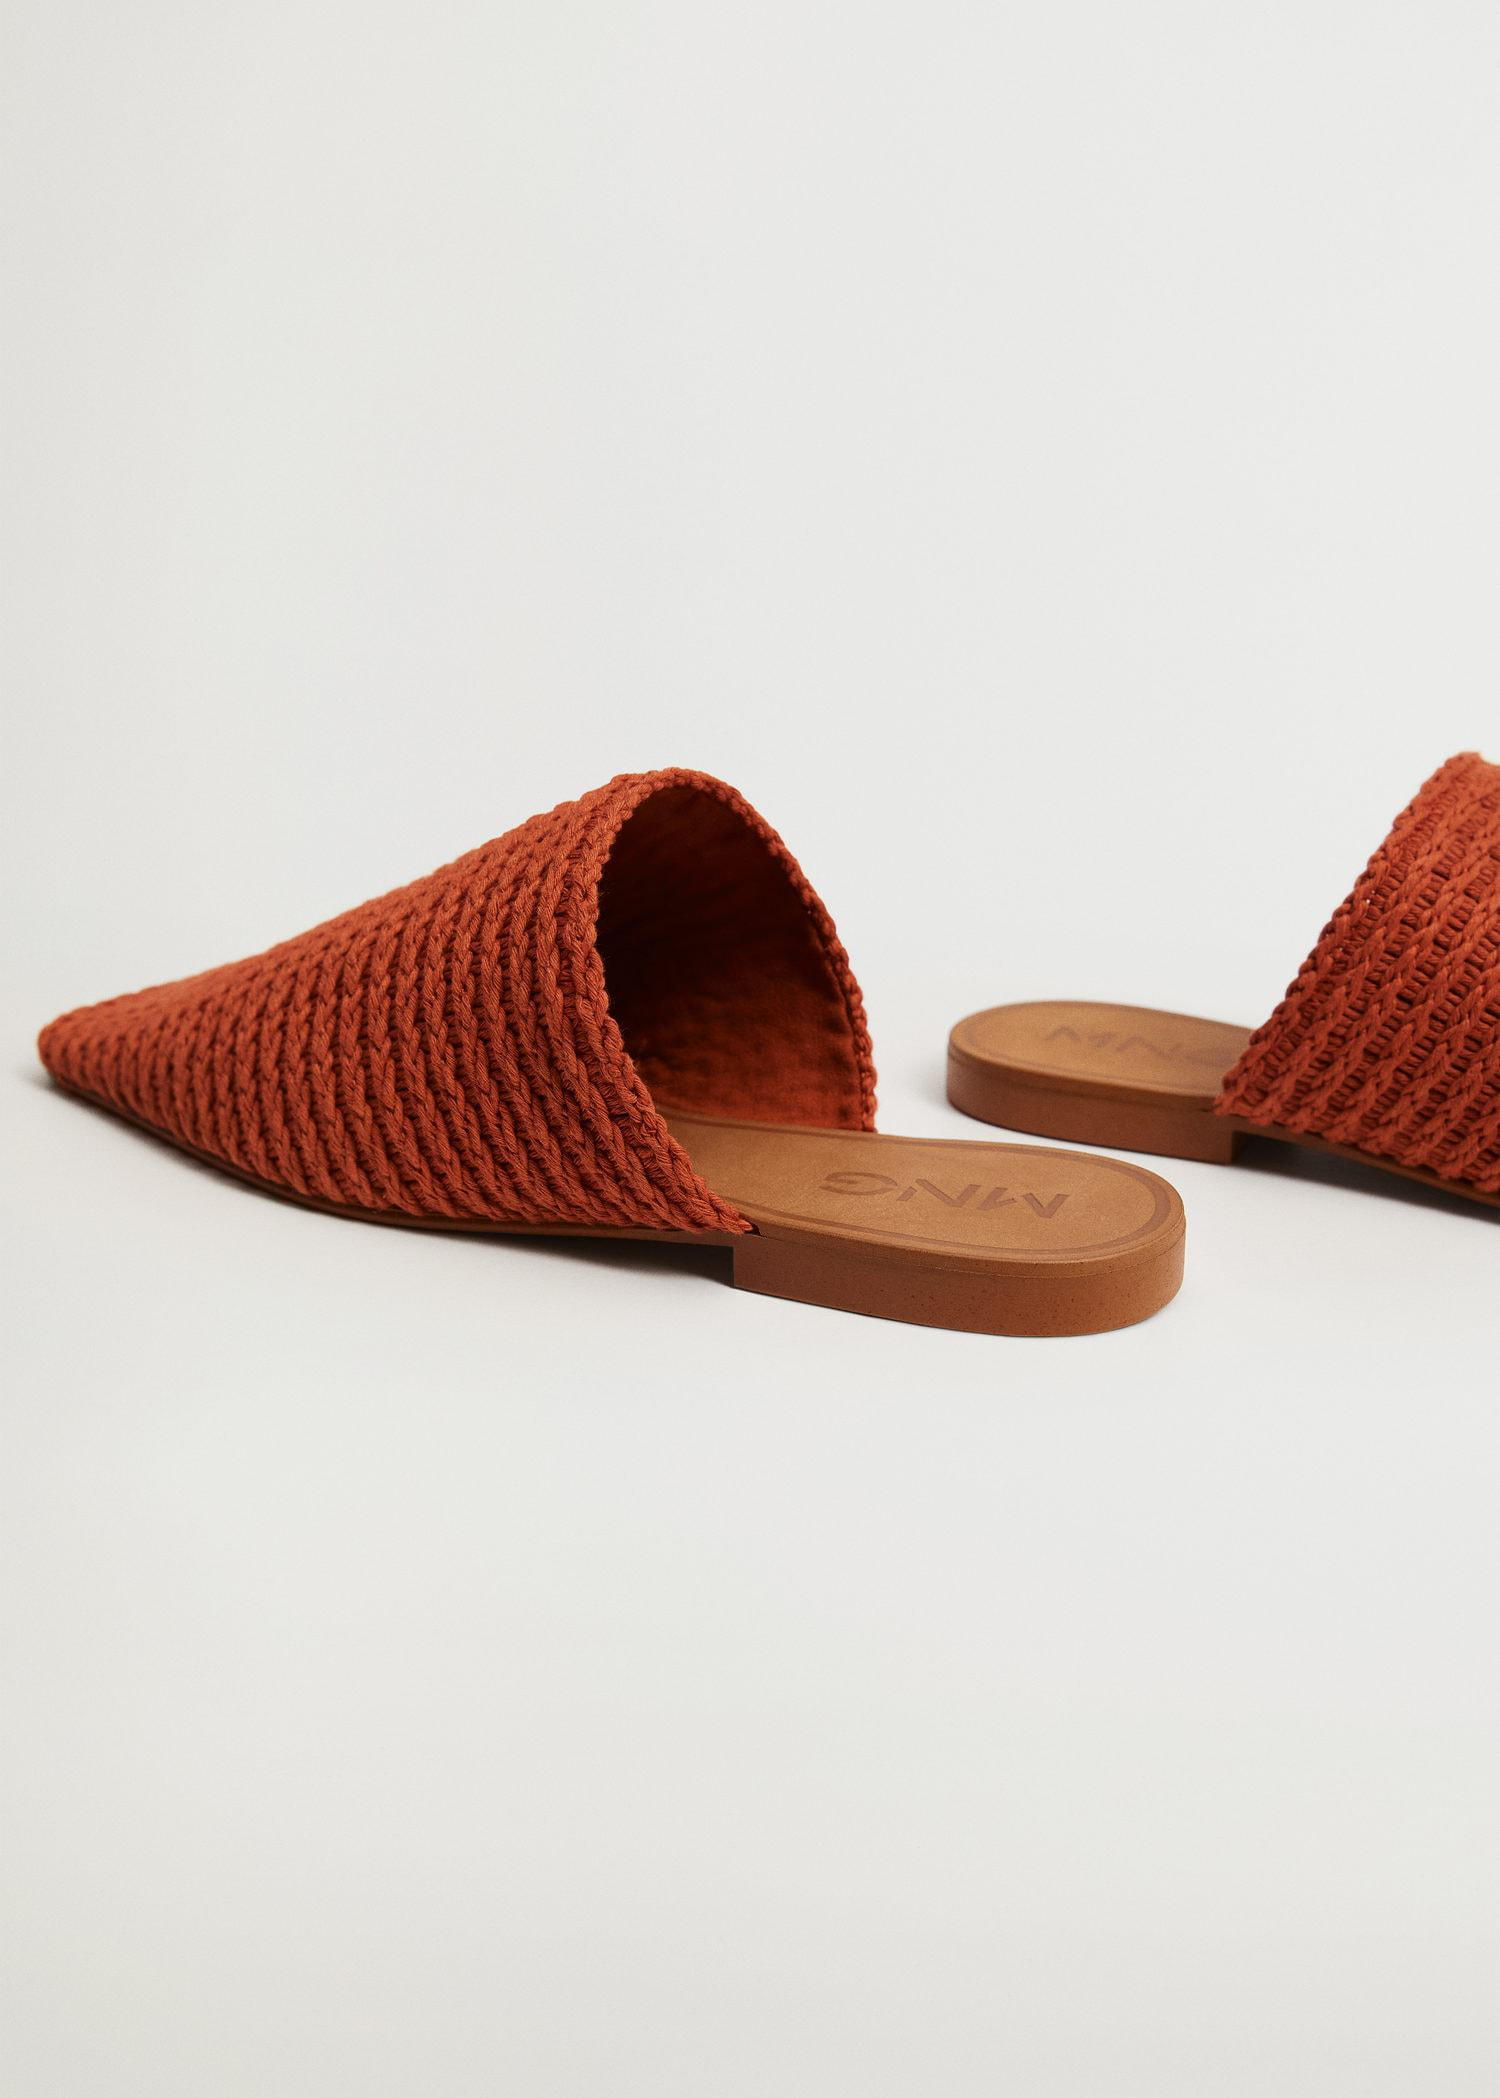 Recycled cotton braided babouche slippers 2